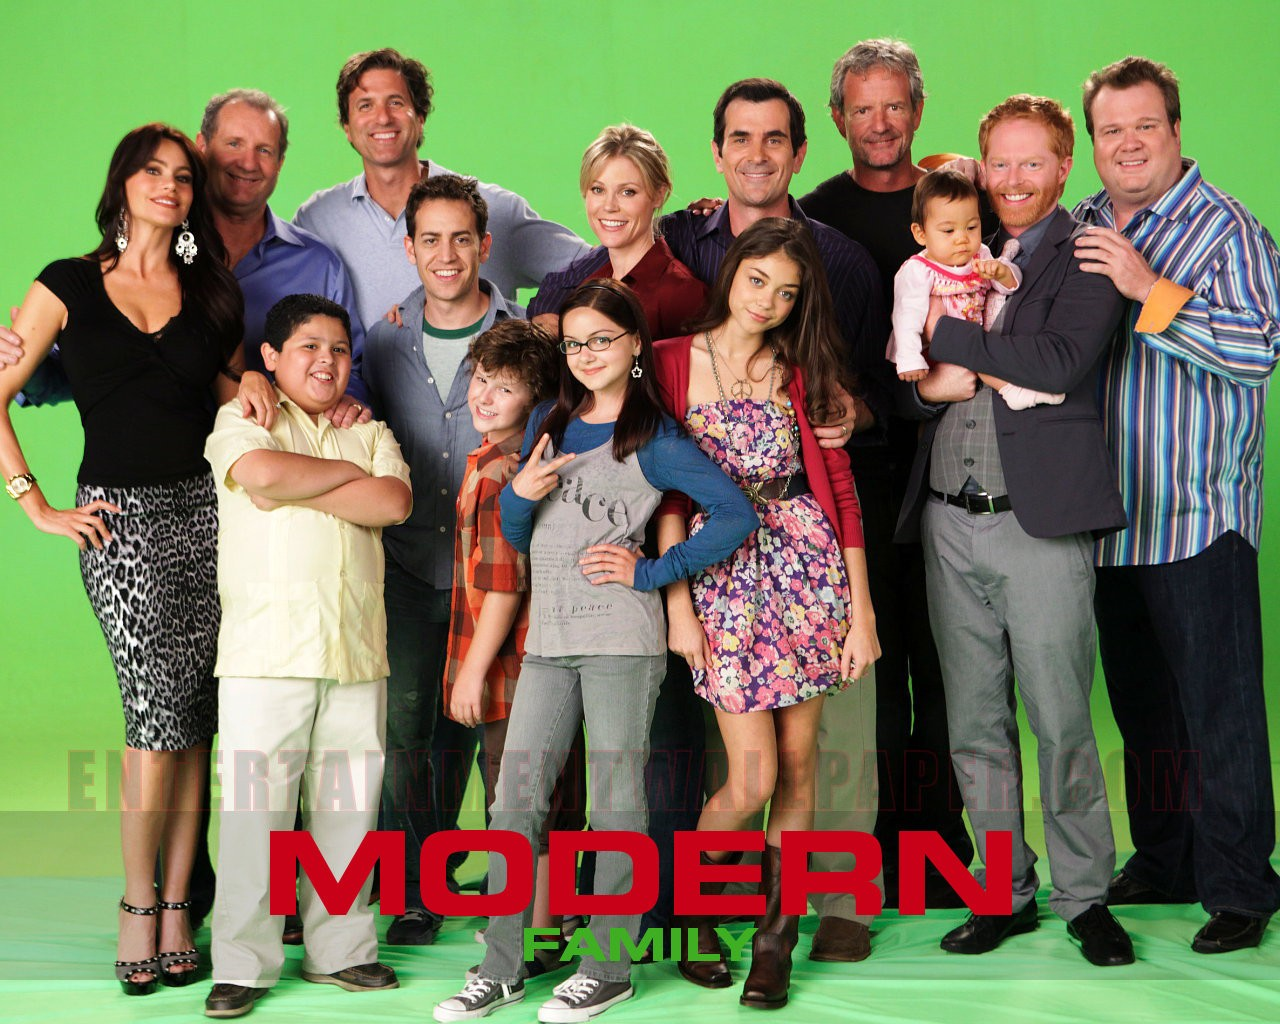 modern family wallpapers modern family pictures modern family photos 1280x1024